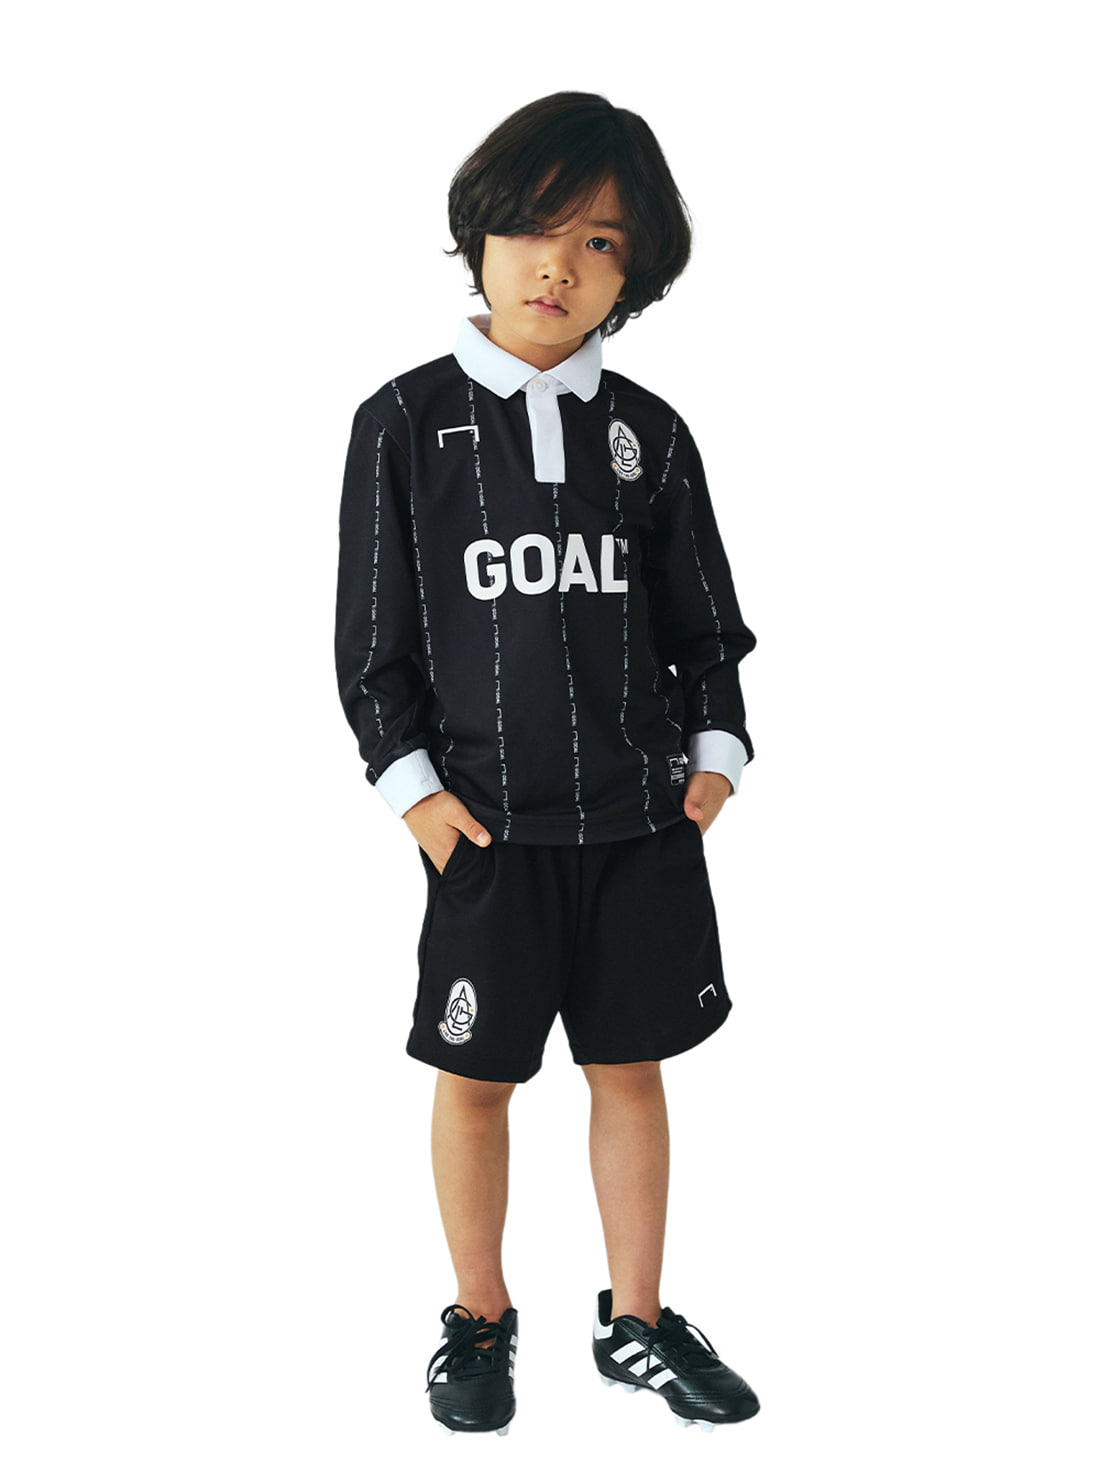 GOALSTUDIO [10% OFF] (KIDS) PLAYER EMBLEM JERSEY & SHORTS SET